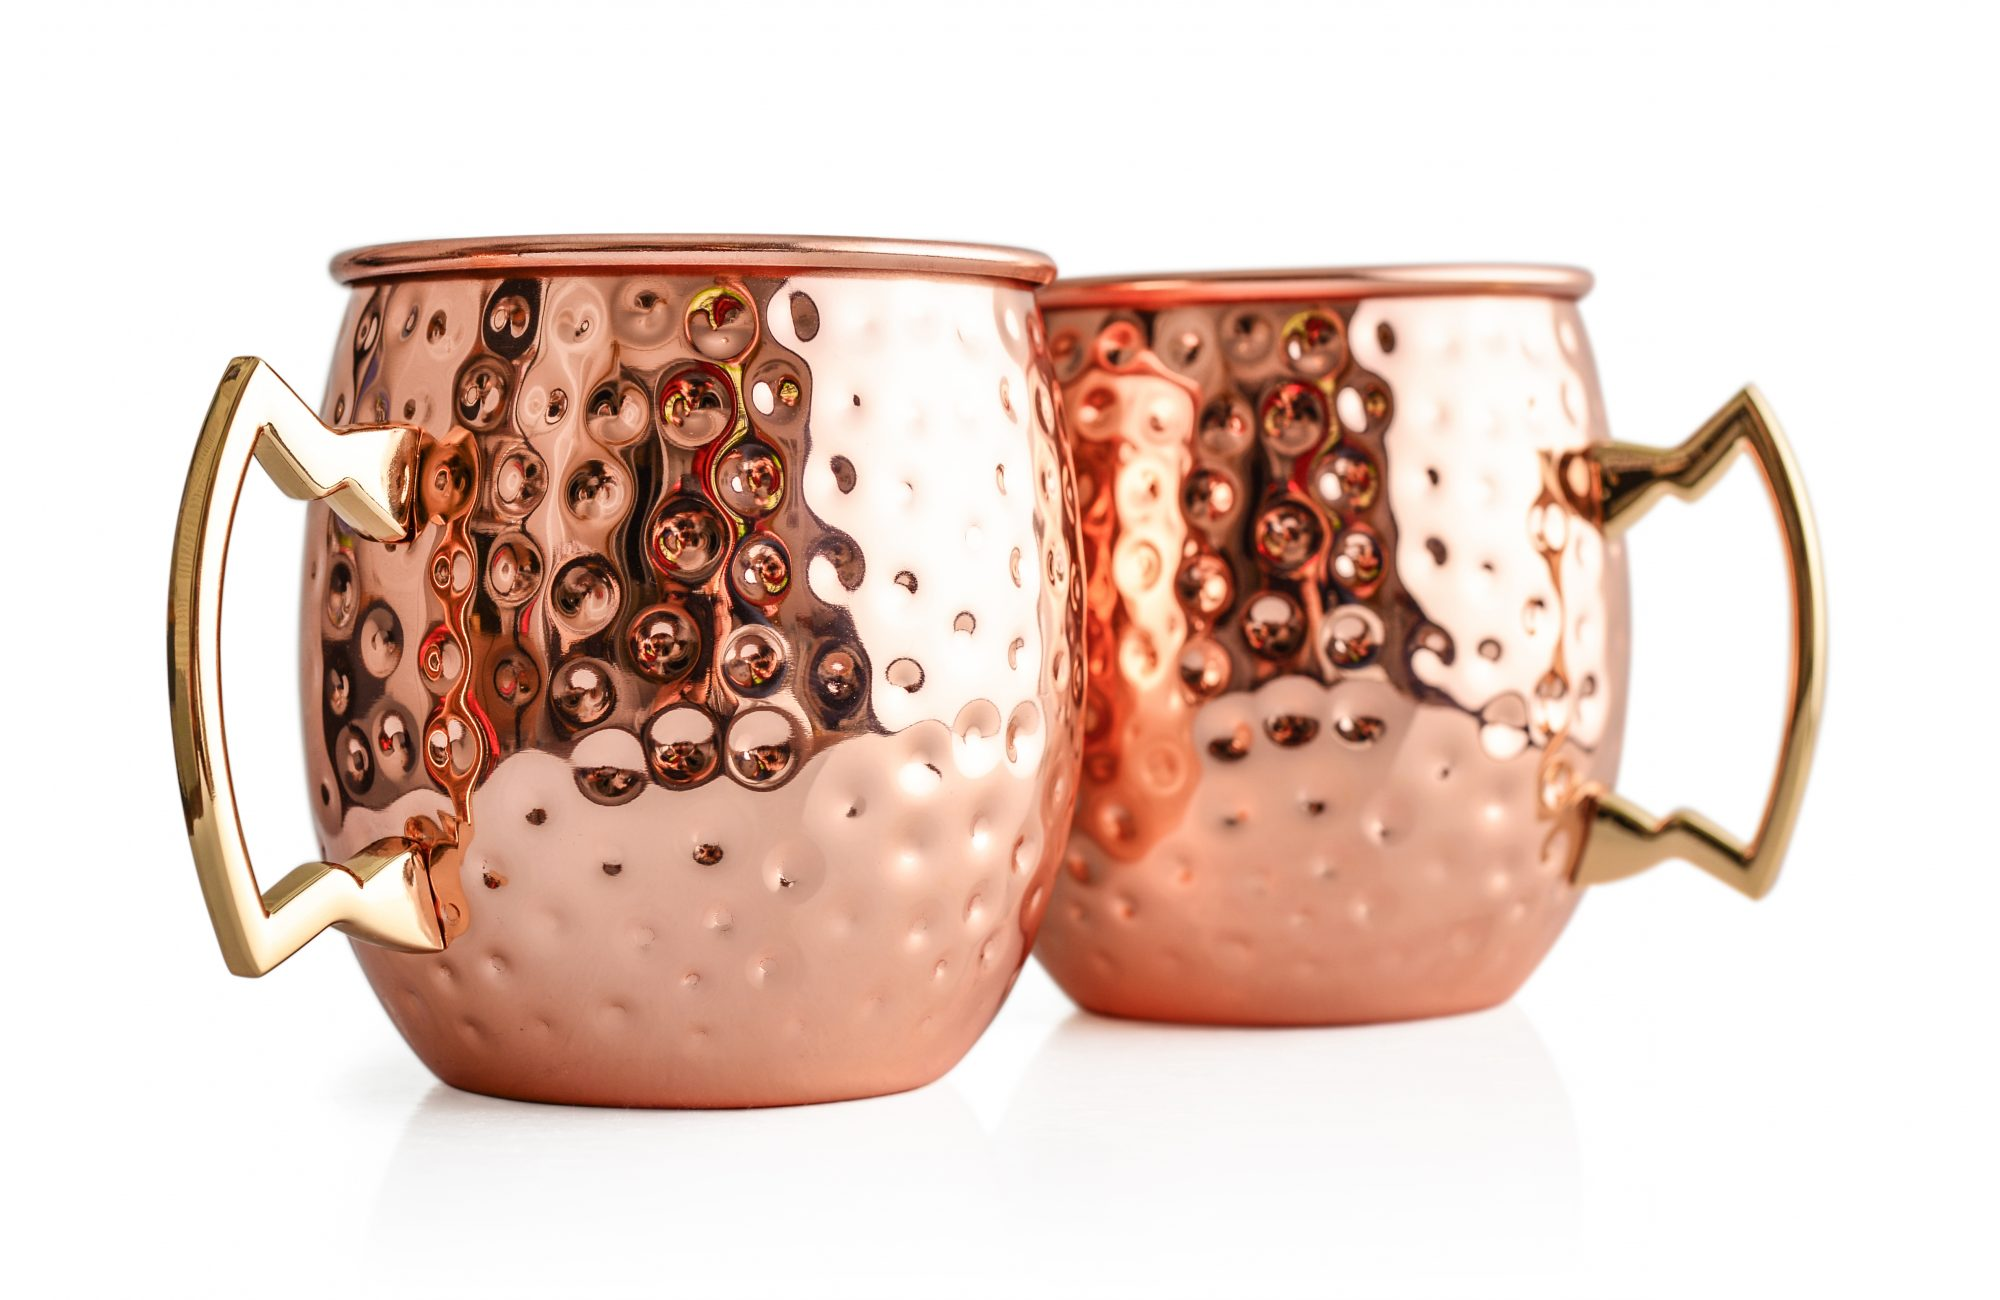 Copper mug getty 7/8/19